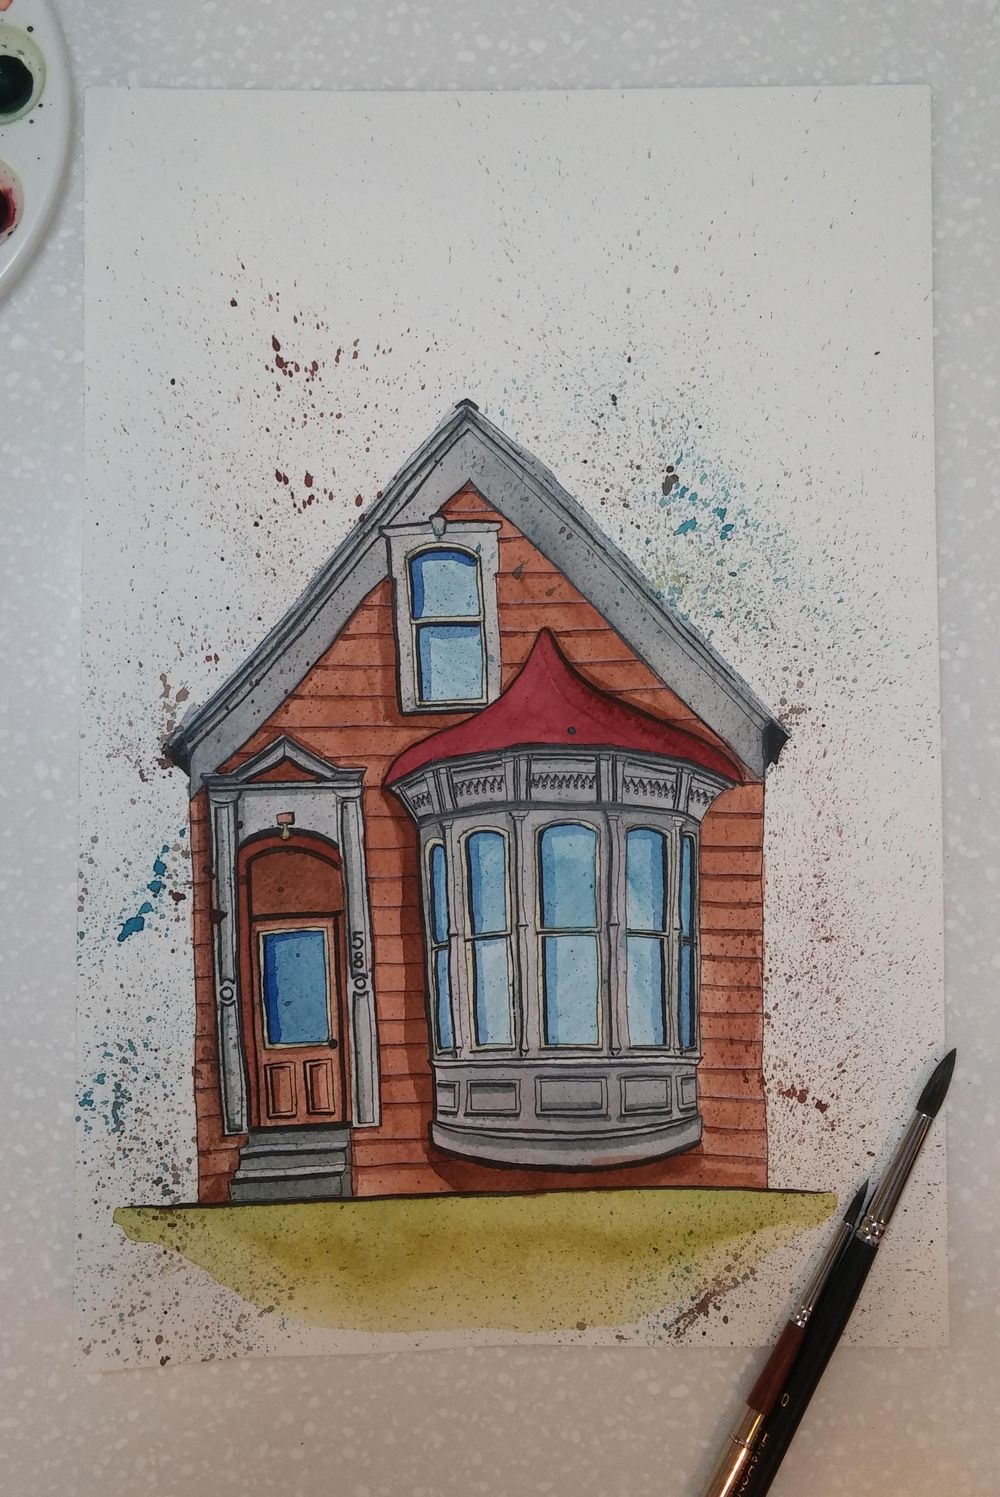 A Restoration of Old and Abandoned Houses - image 8 - student project